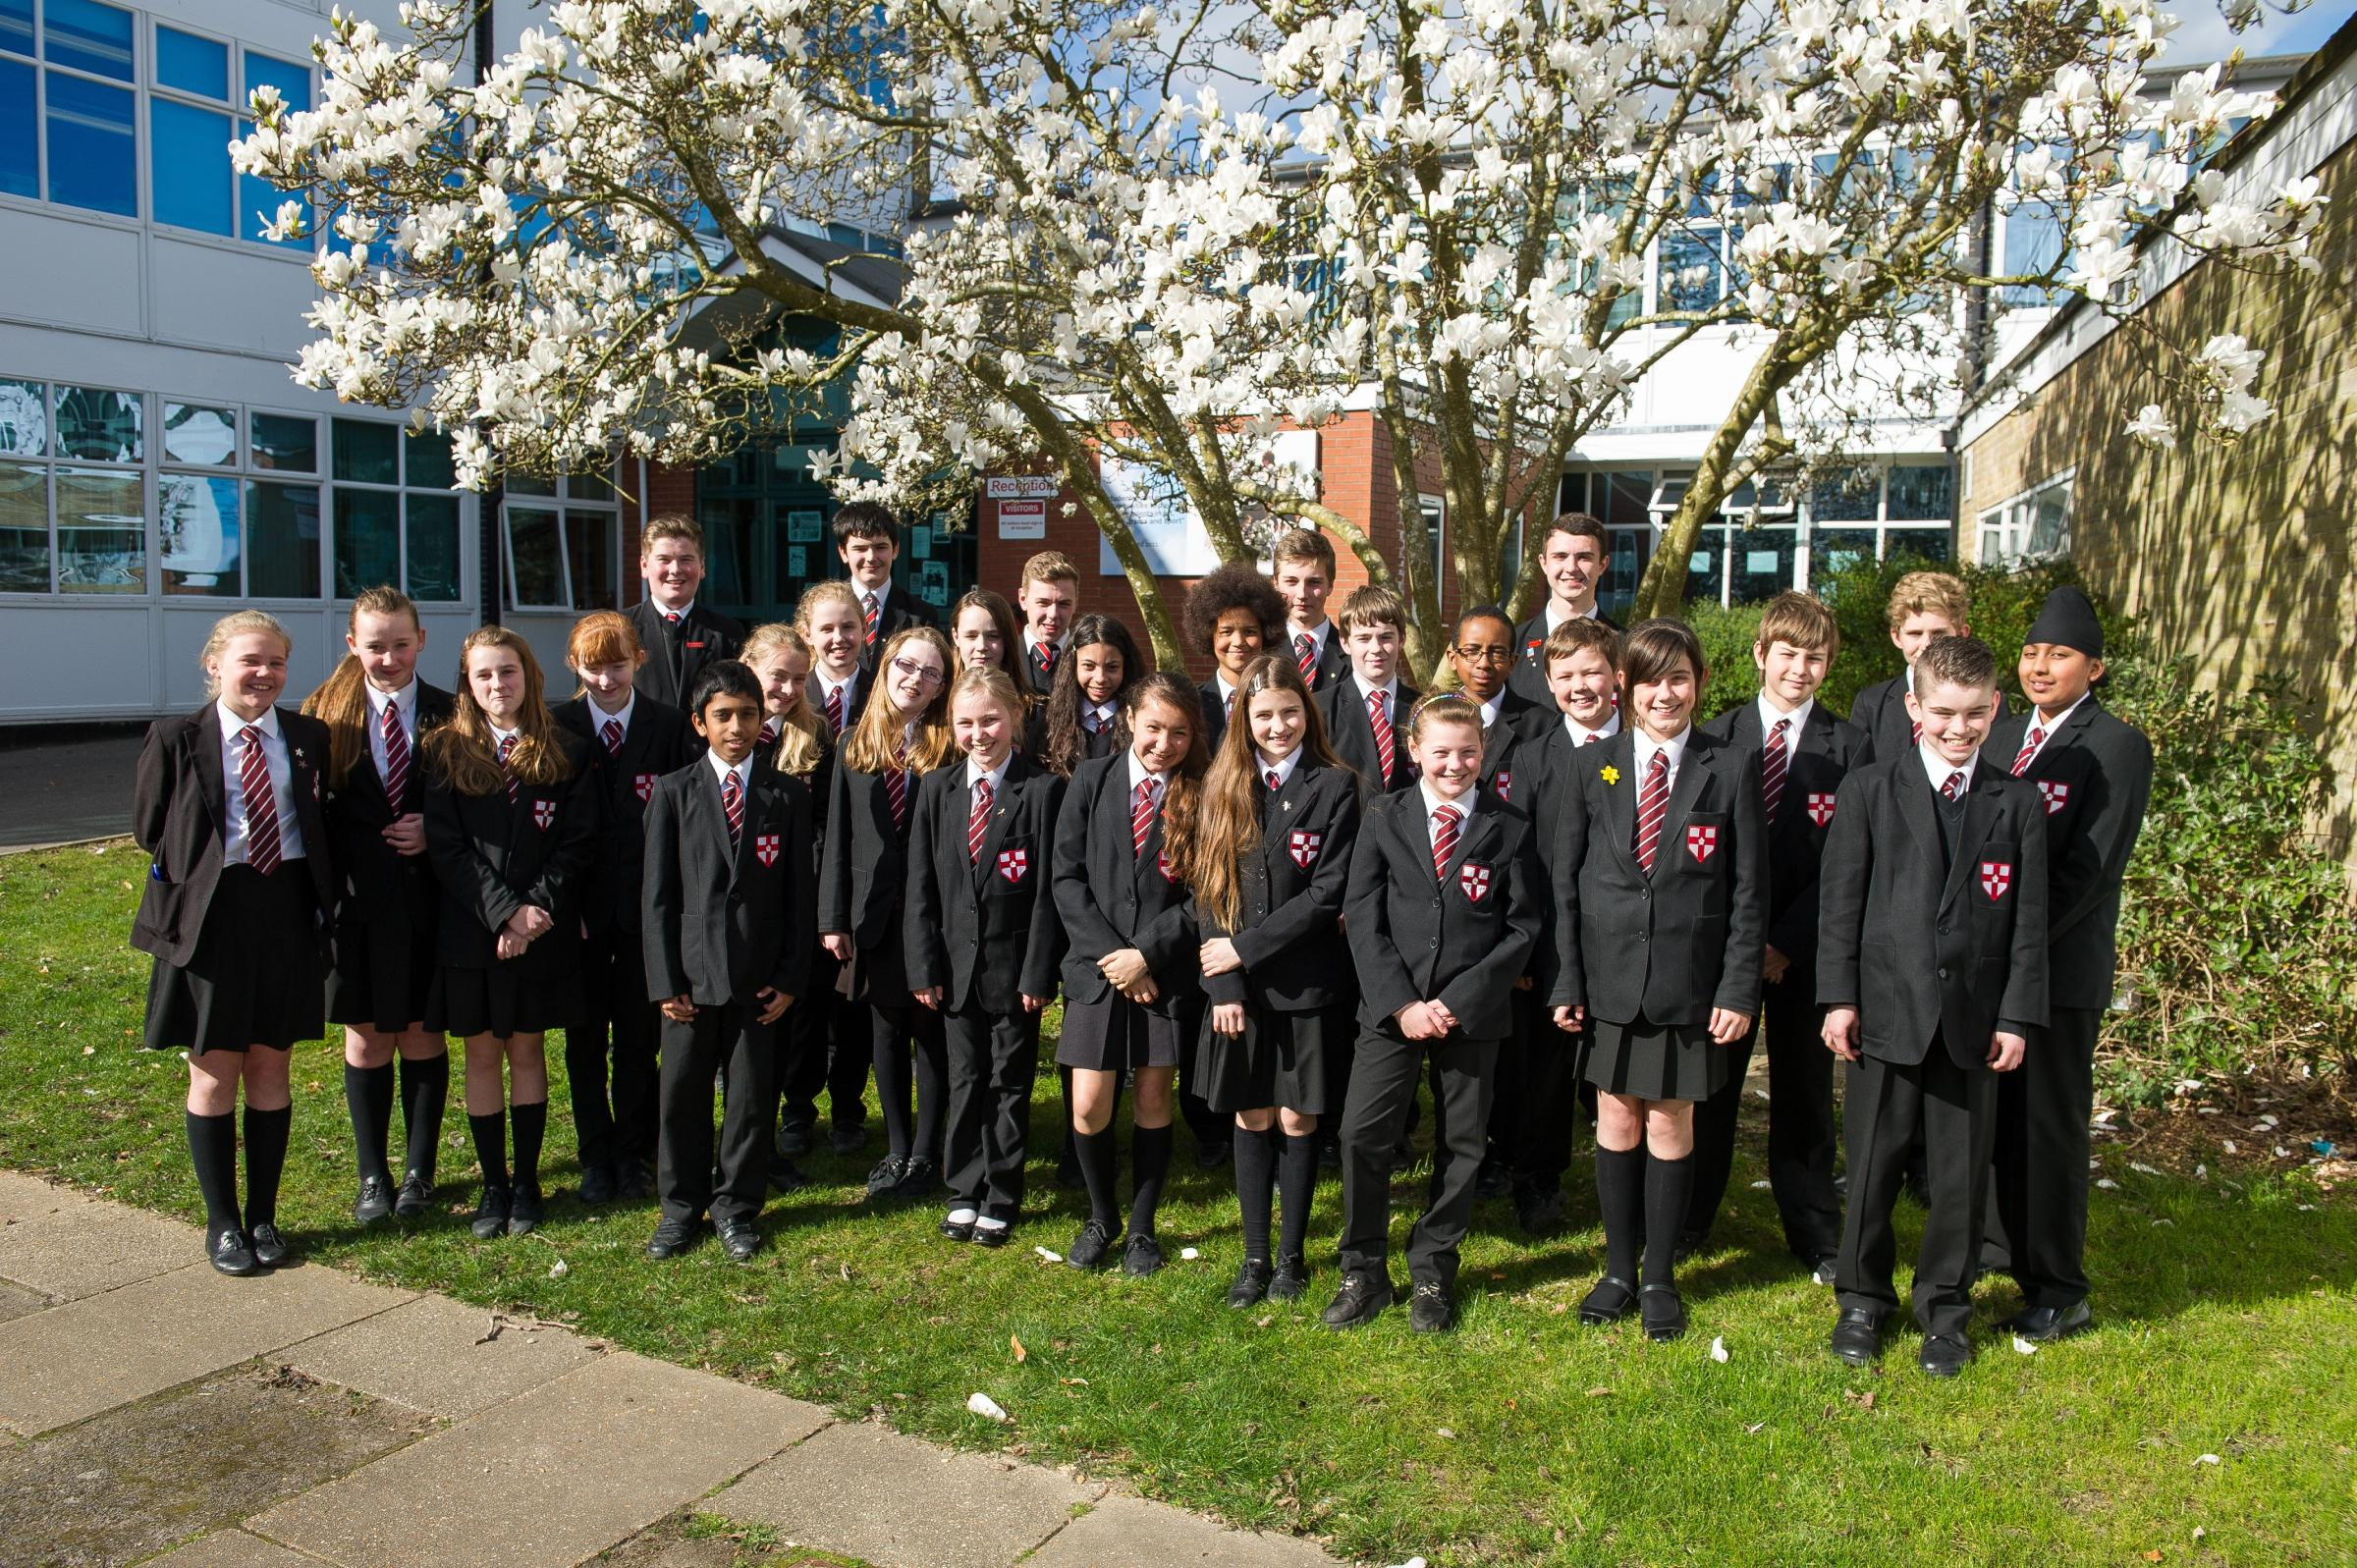 Pupils at St George Catholic College in Southampton